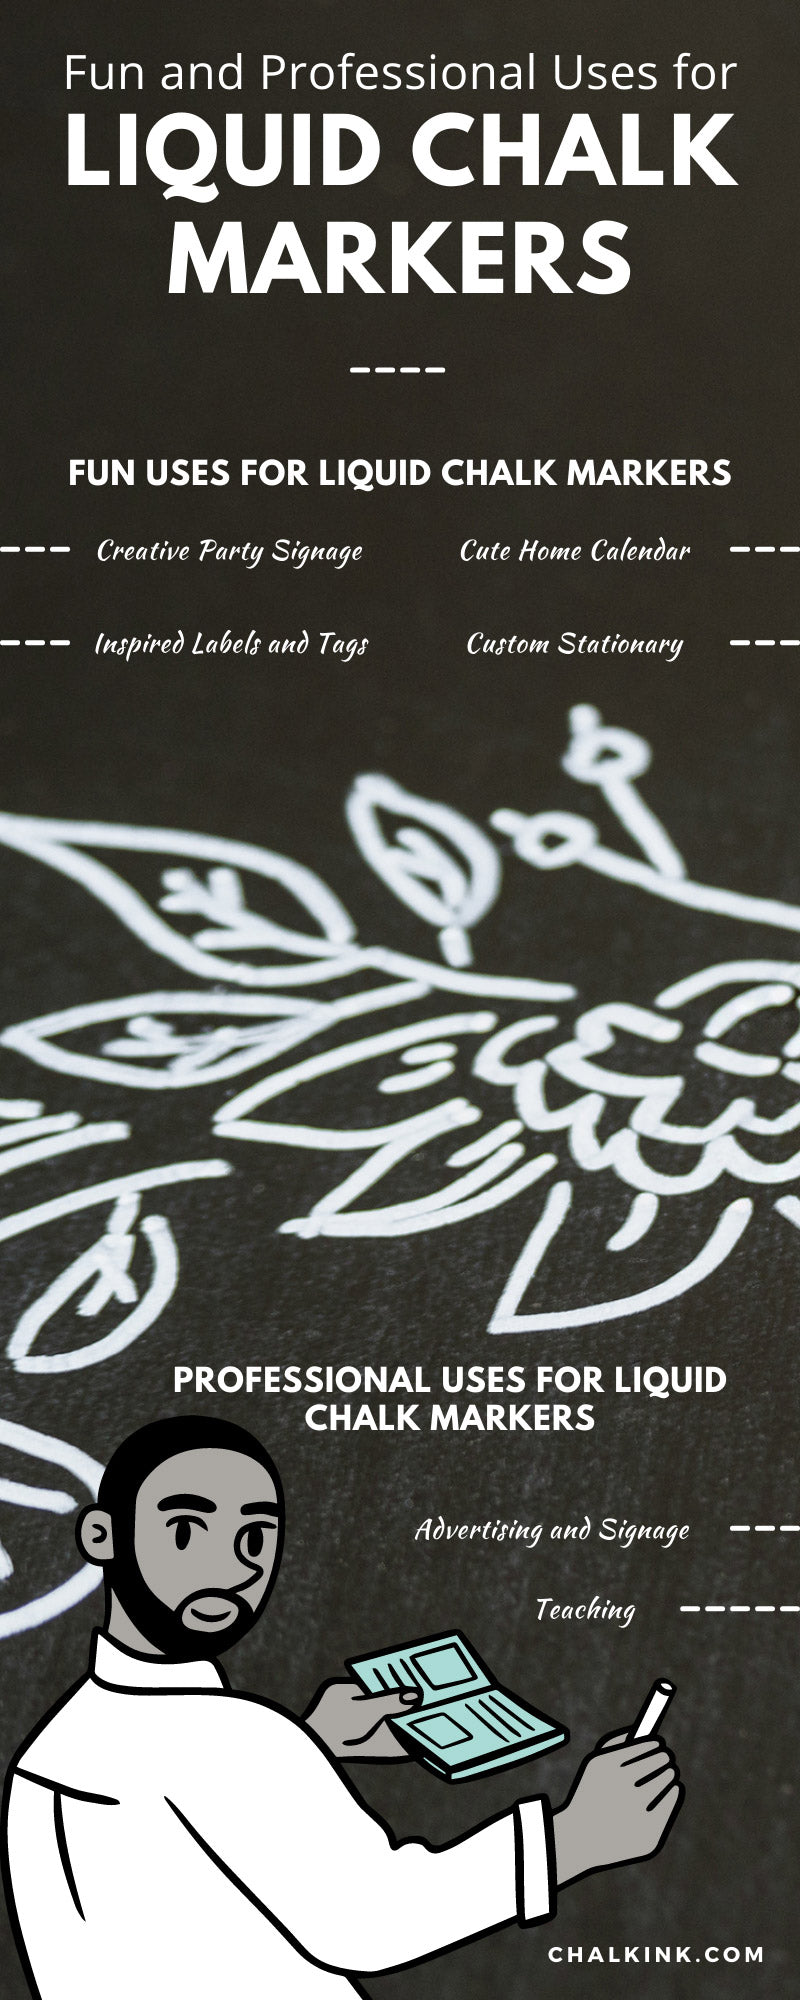 Fun and Professional Uses for Liquid Chalk Markers